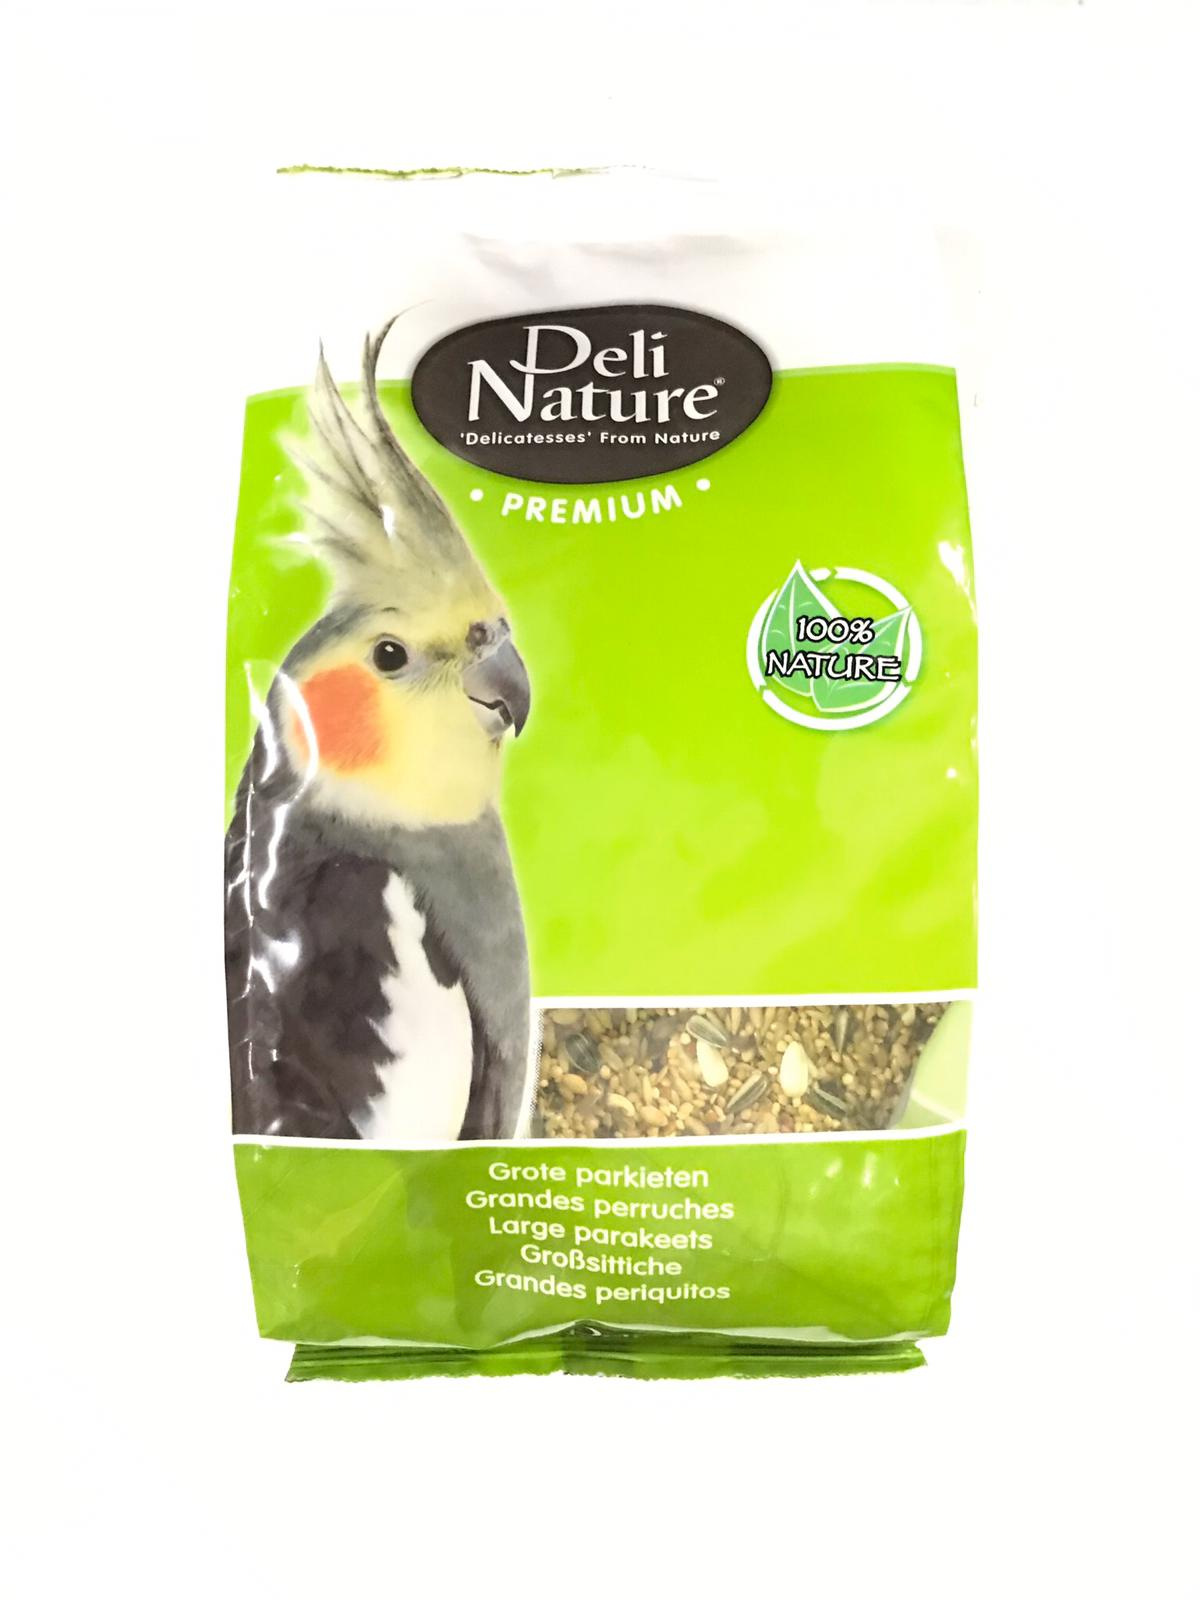 Deli Nature Premium Parakeets Mixture